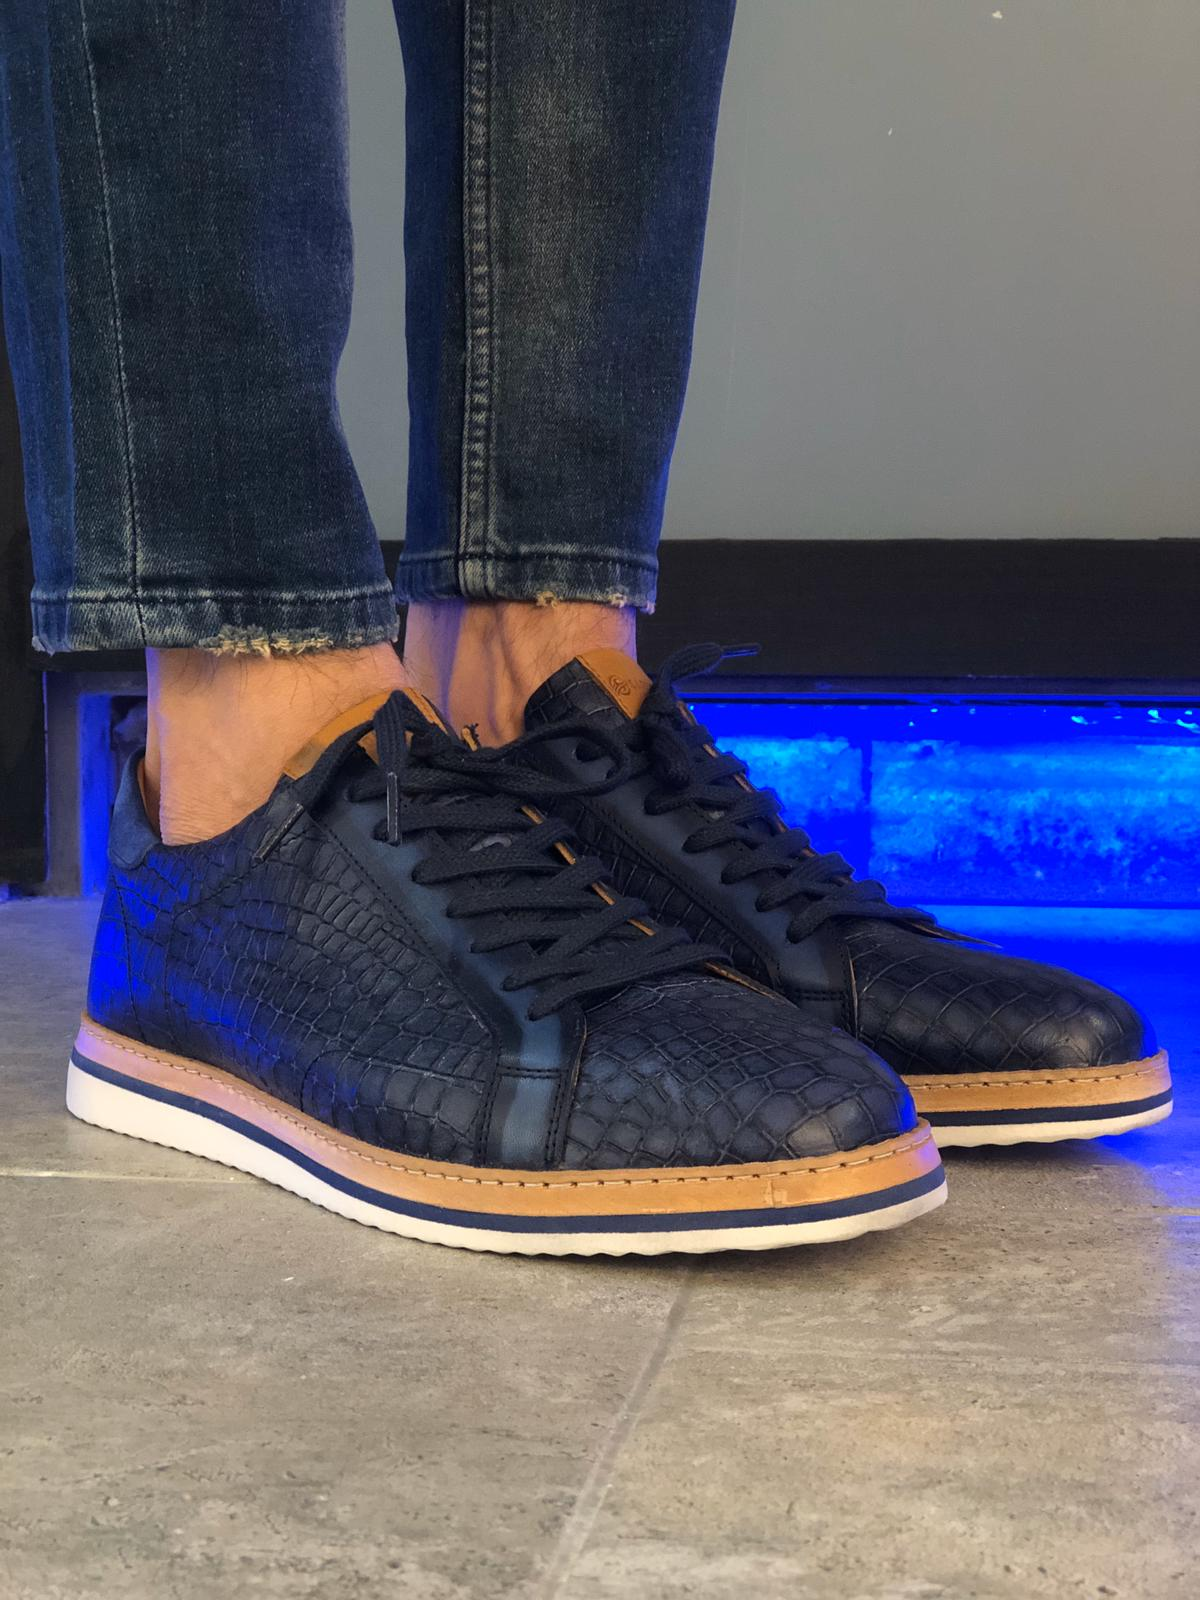 Aysoti Clifton Navy Blue Lace Up Sneakers